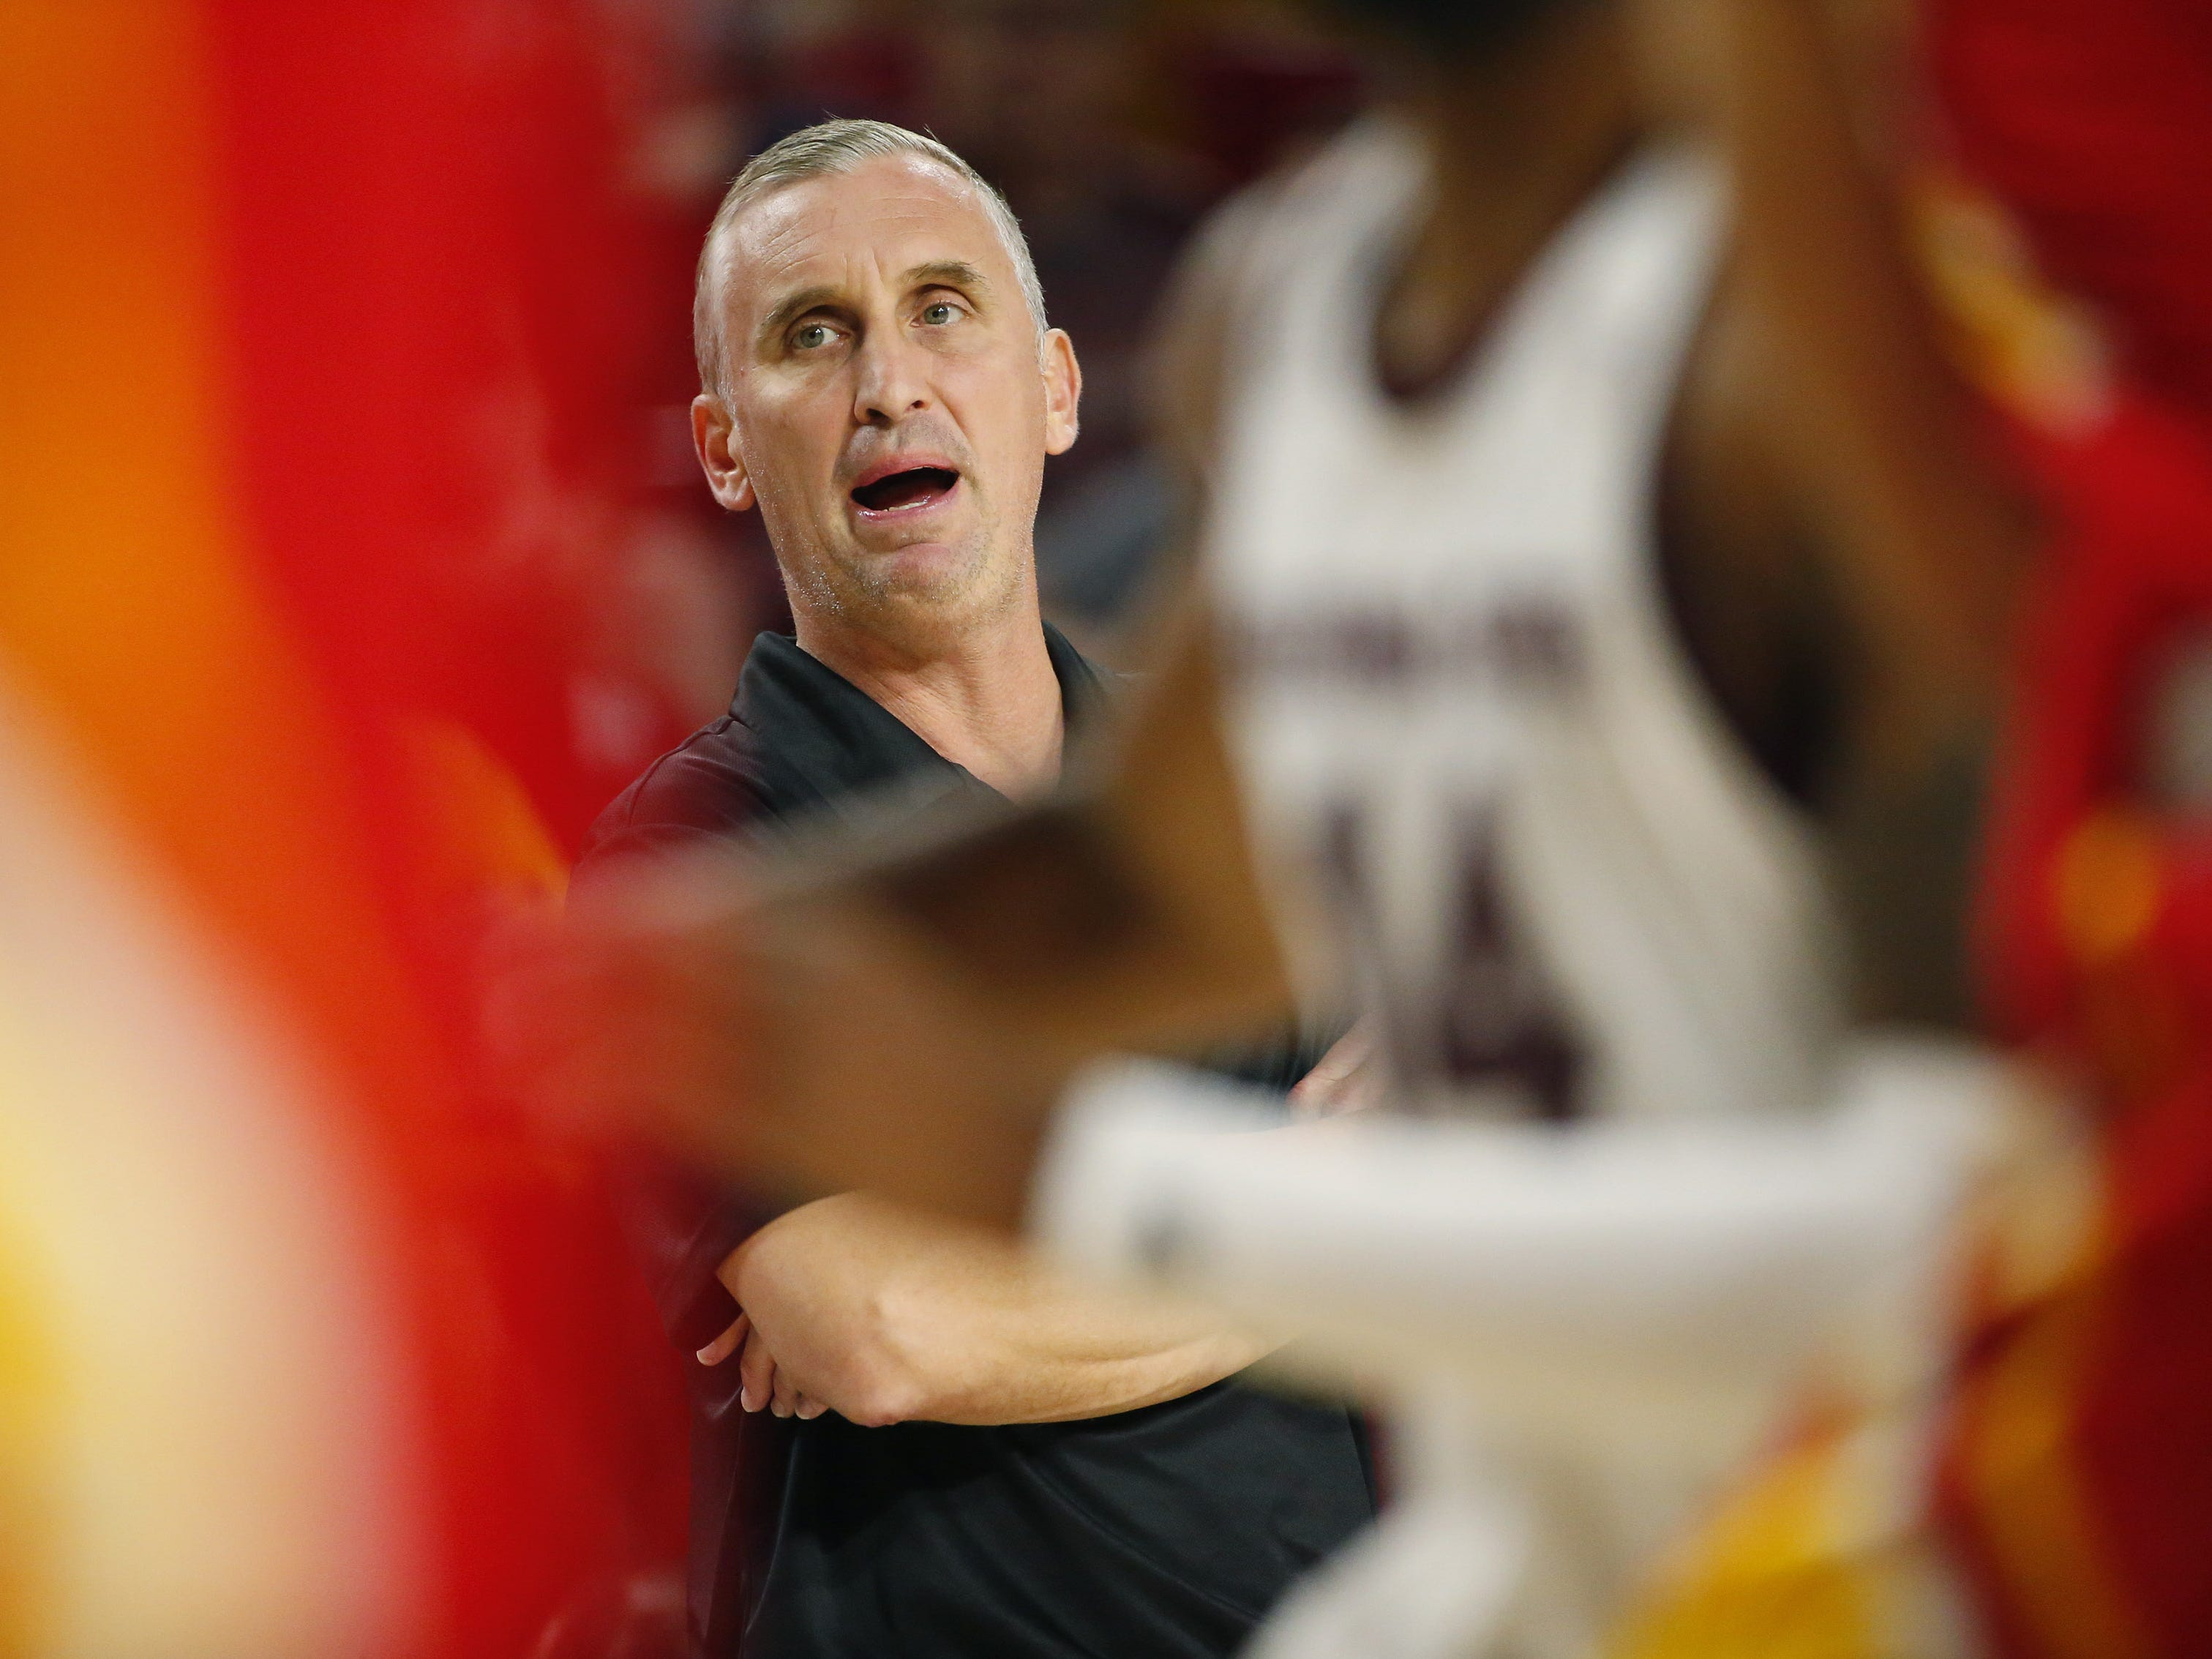 Arizona State head coach Bobby Hurley instructs his team in the second half during exhibition play against Arizona Christian Oct. 30.